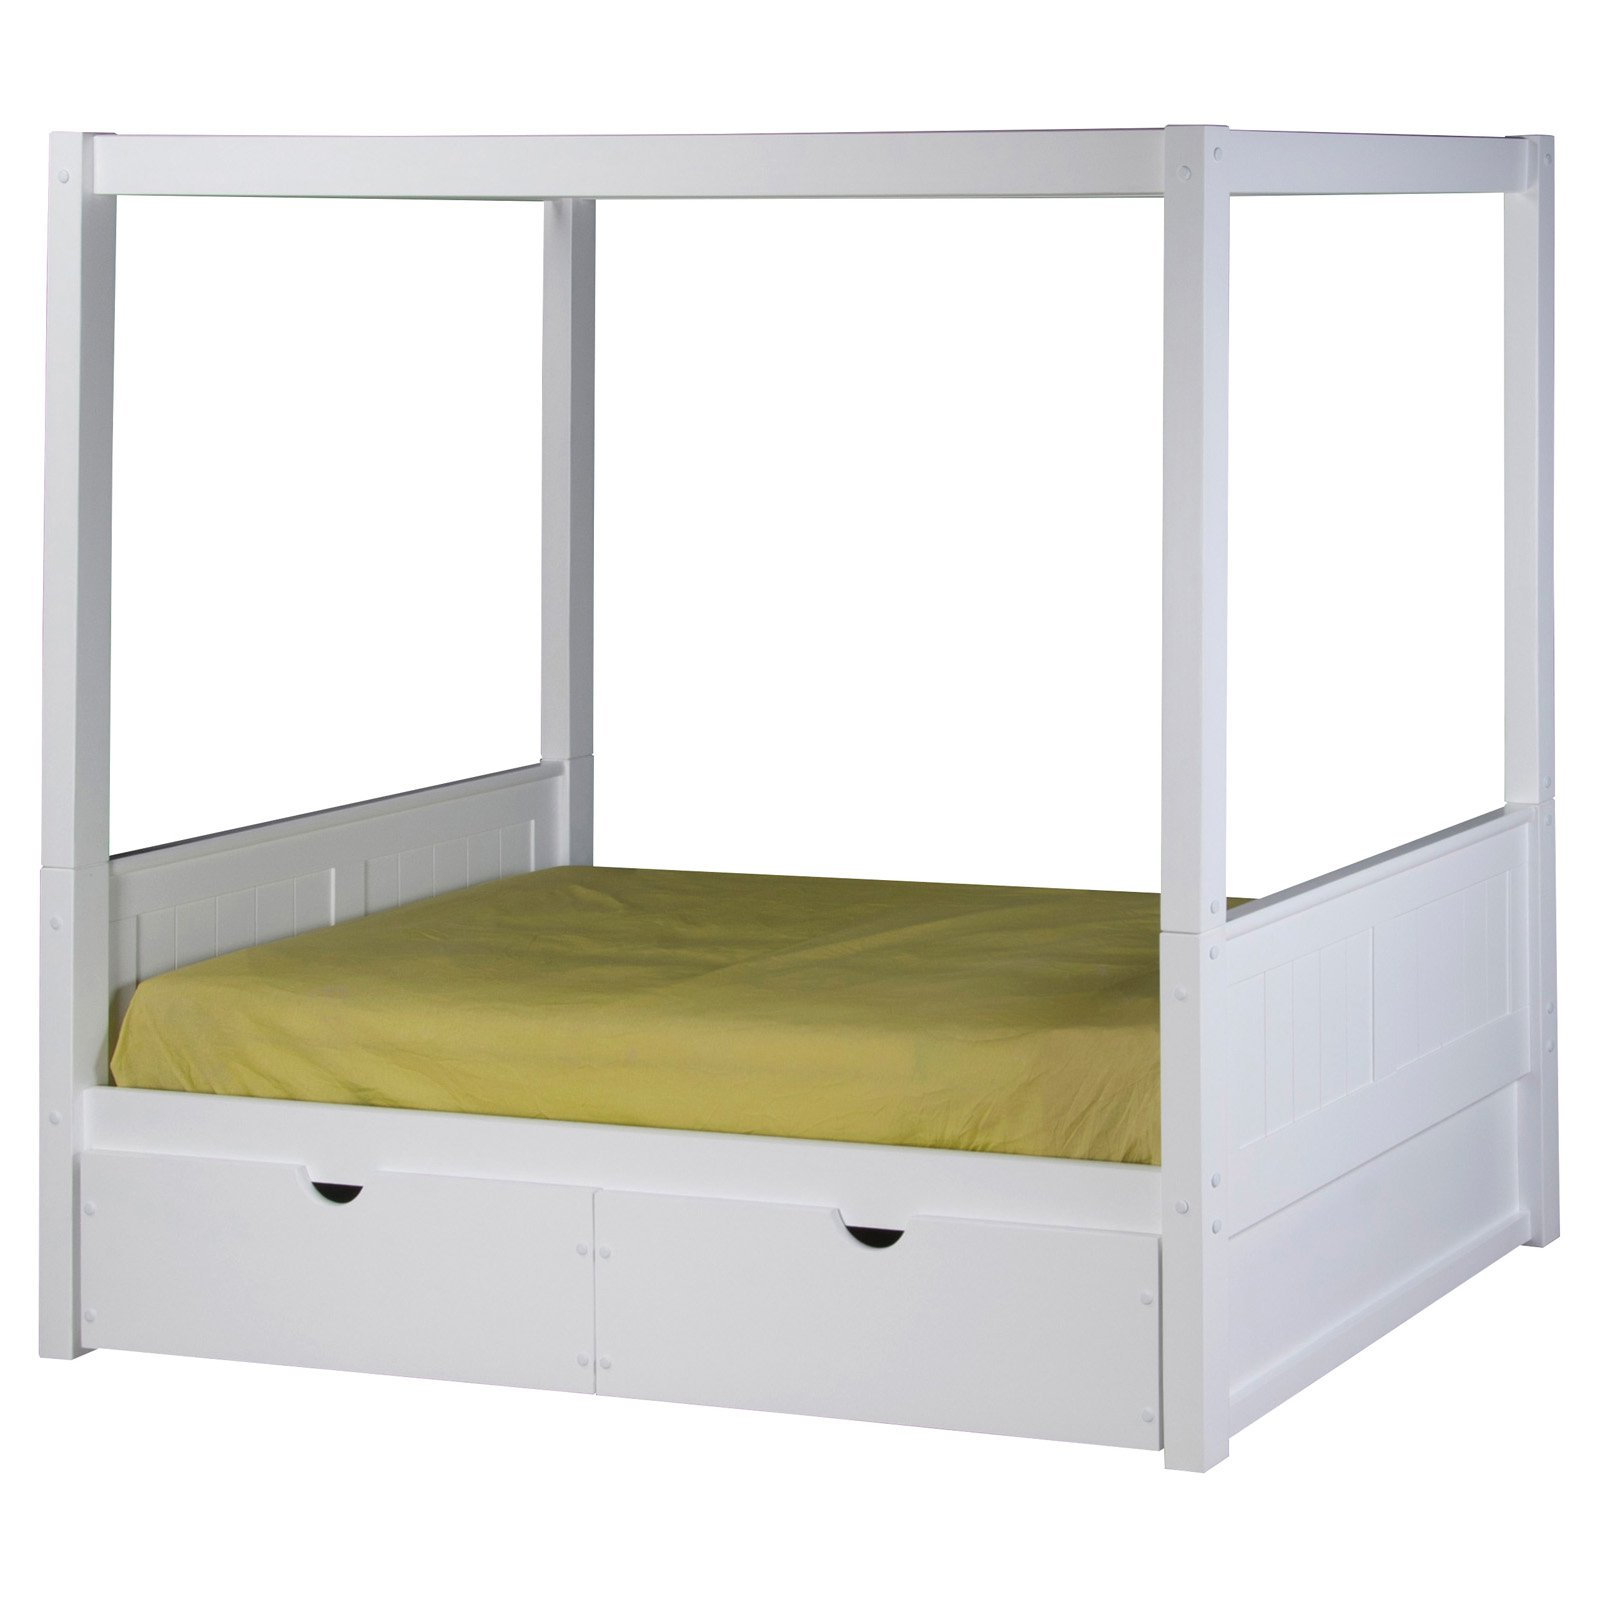 Camaflexi Twin Size Canopy Bed with Drawers Panel Headboard White Finish by EcoFlex Furniture